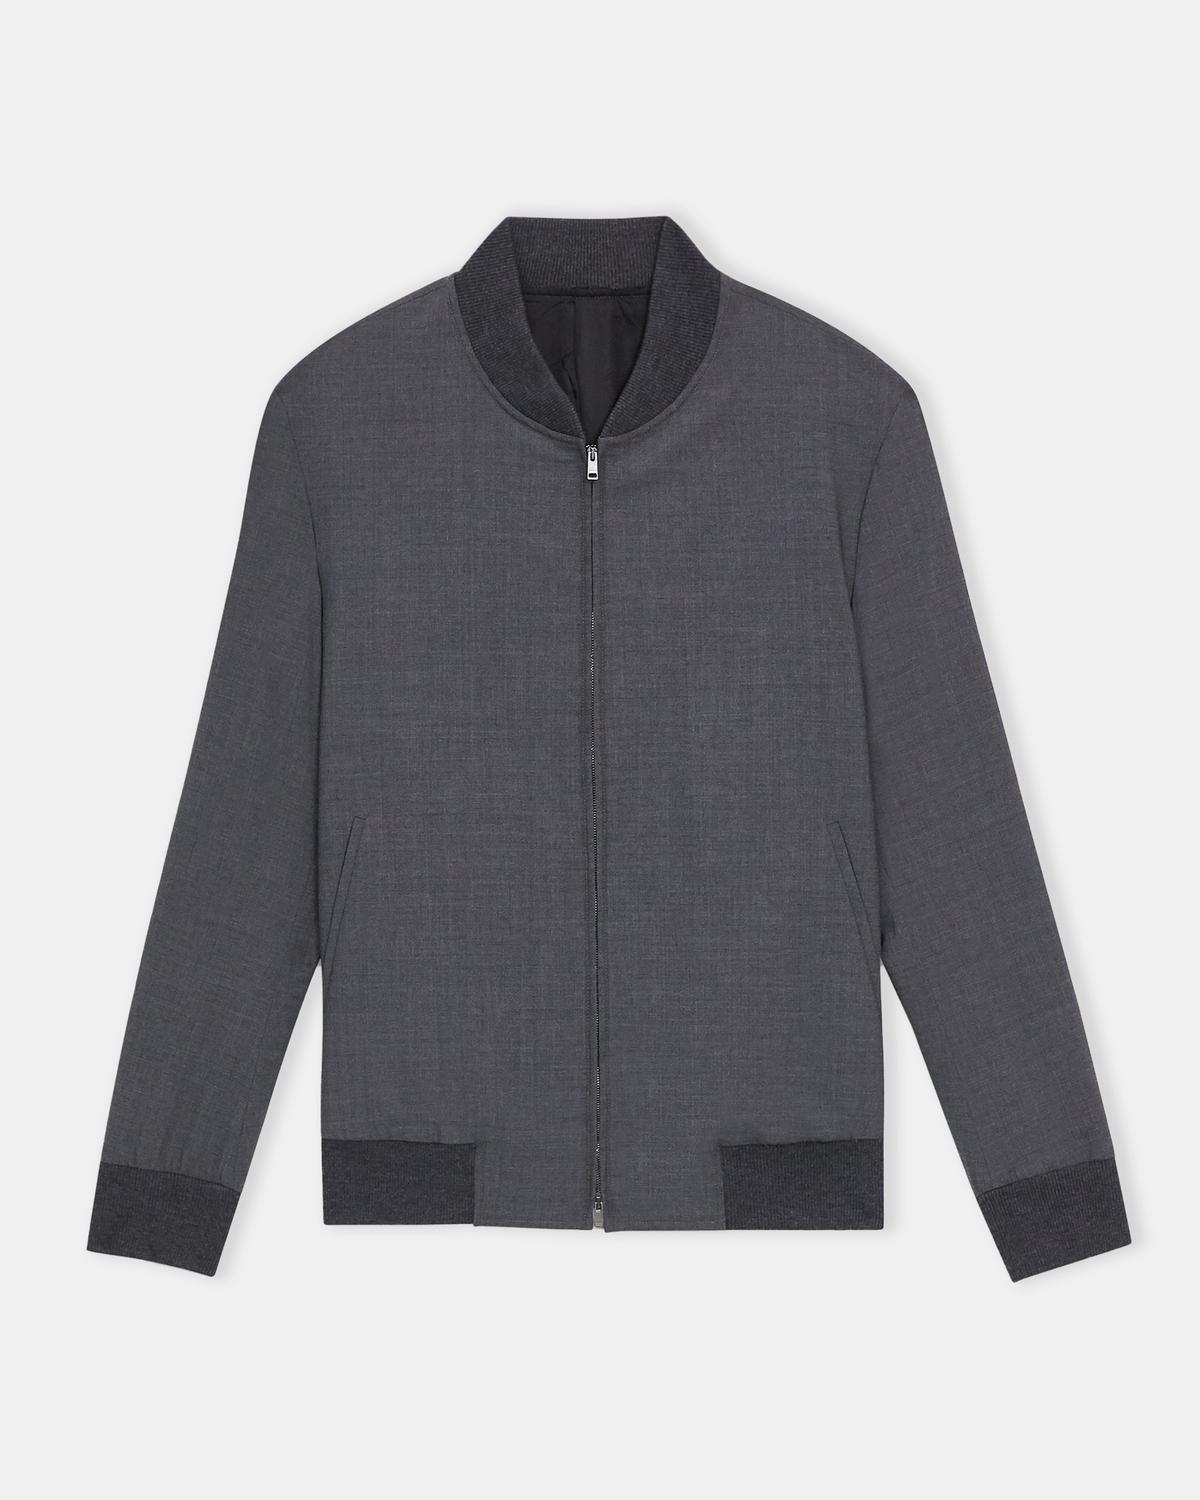 Aiden Jacket in Good Wool